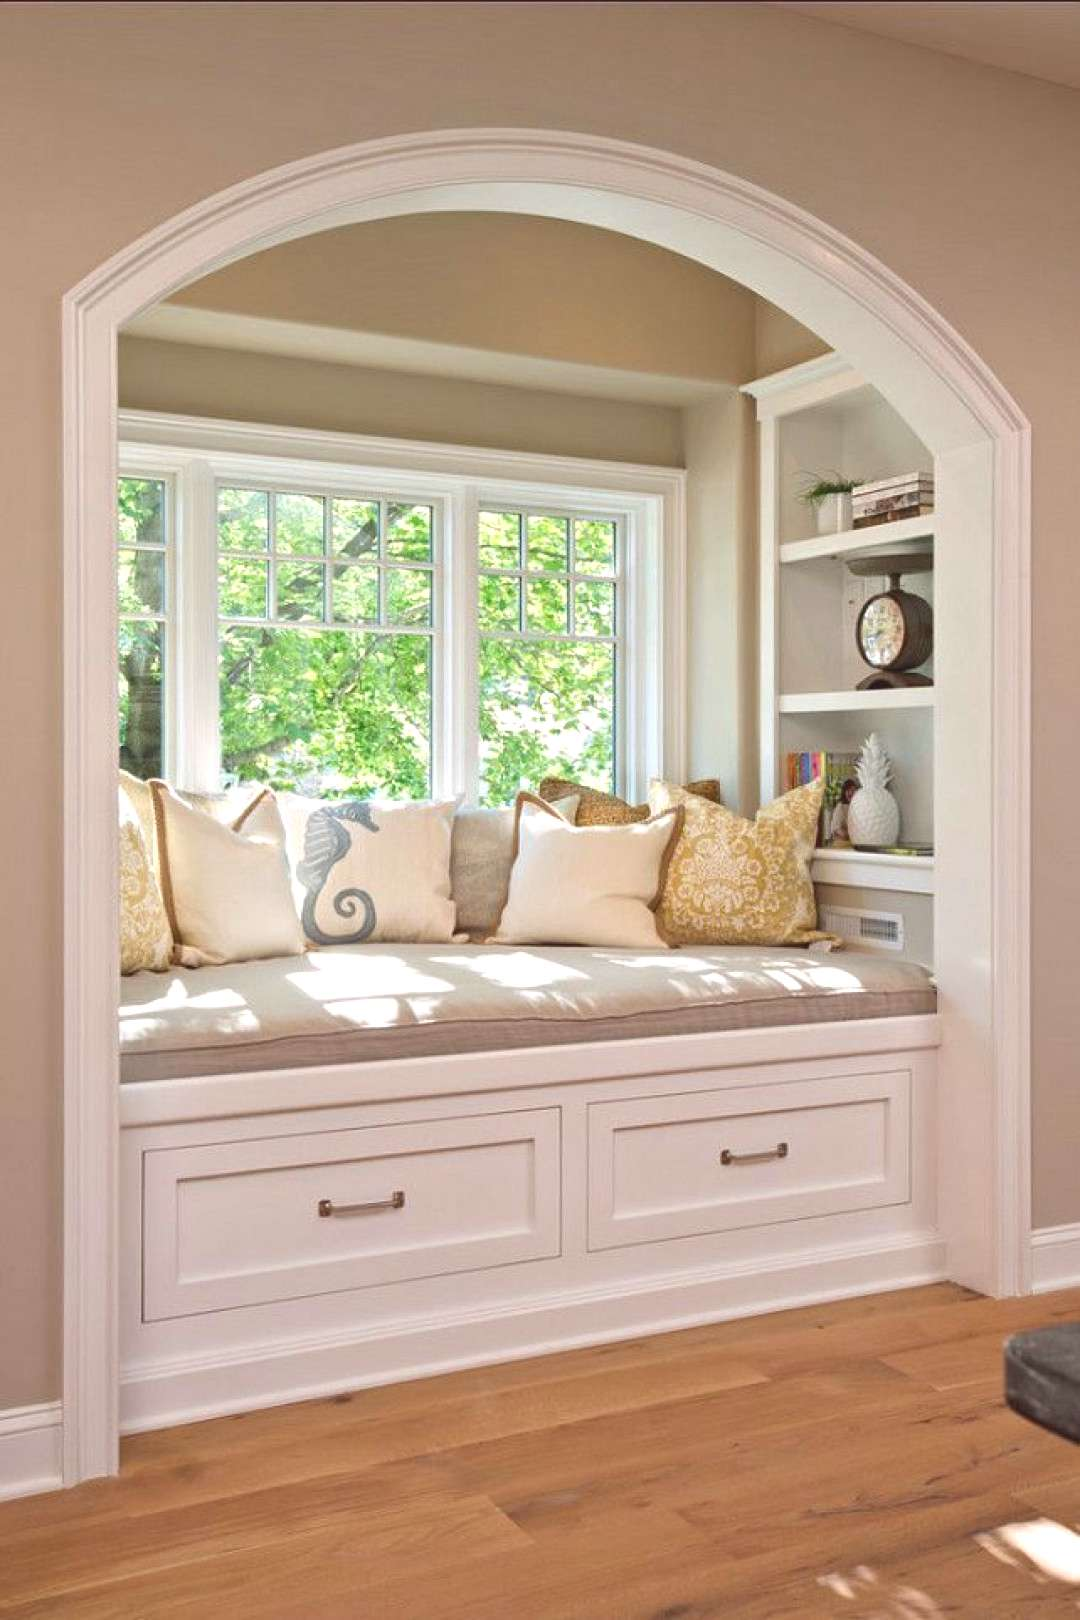 32 Cozy Nooks to Curl Up with a Book • Unique Interior Styles